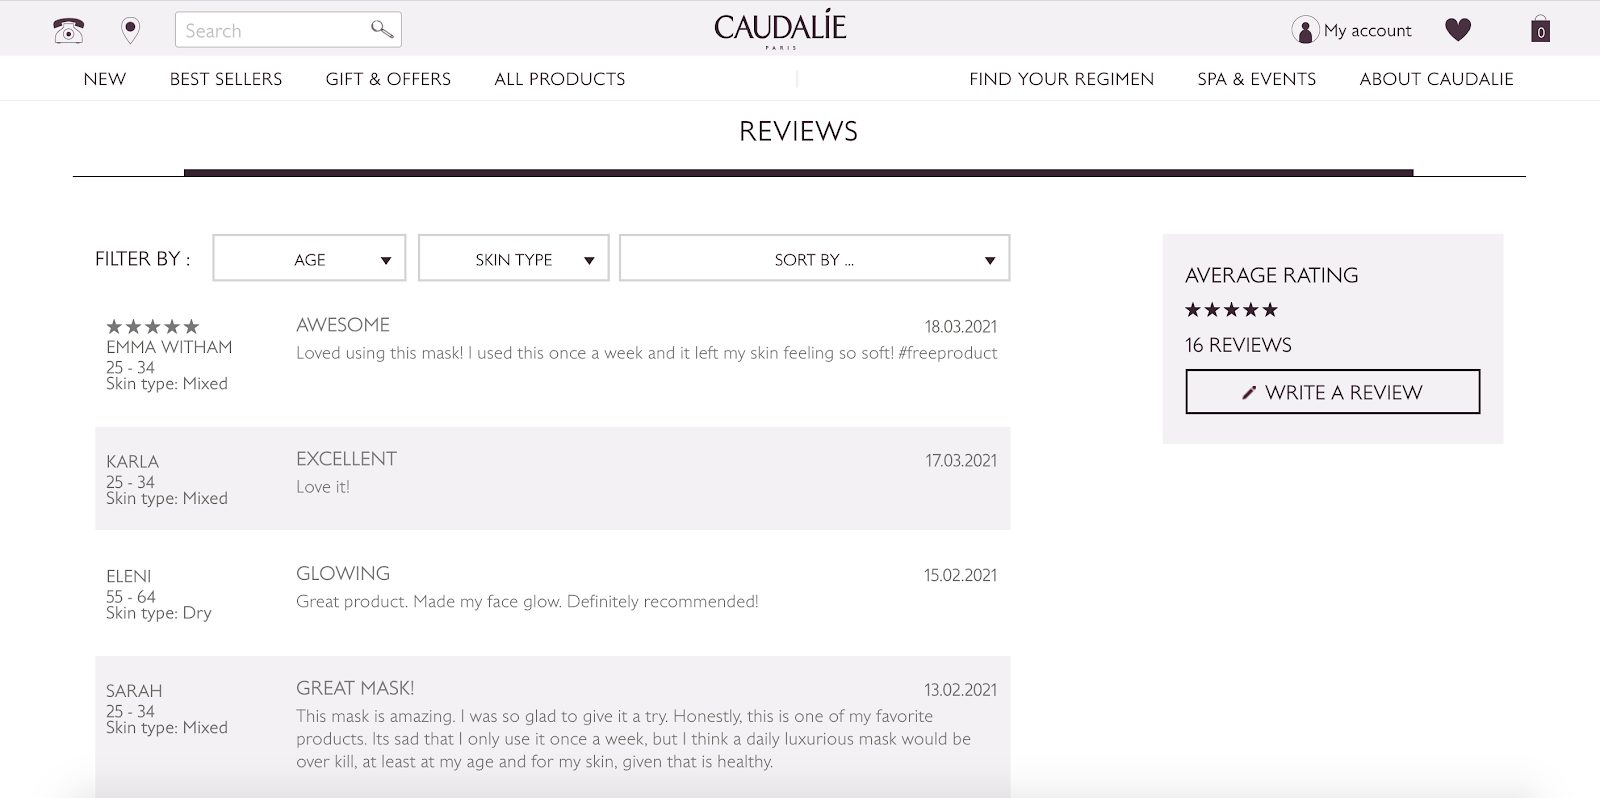 How to Design a Conversation-Optimized Online Shopping Website: Caudalie page